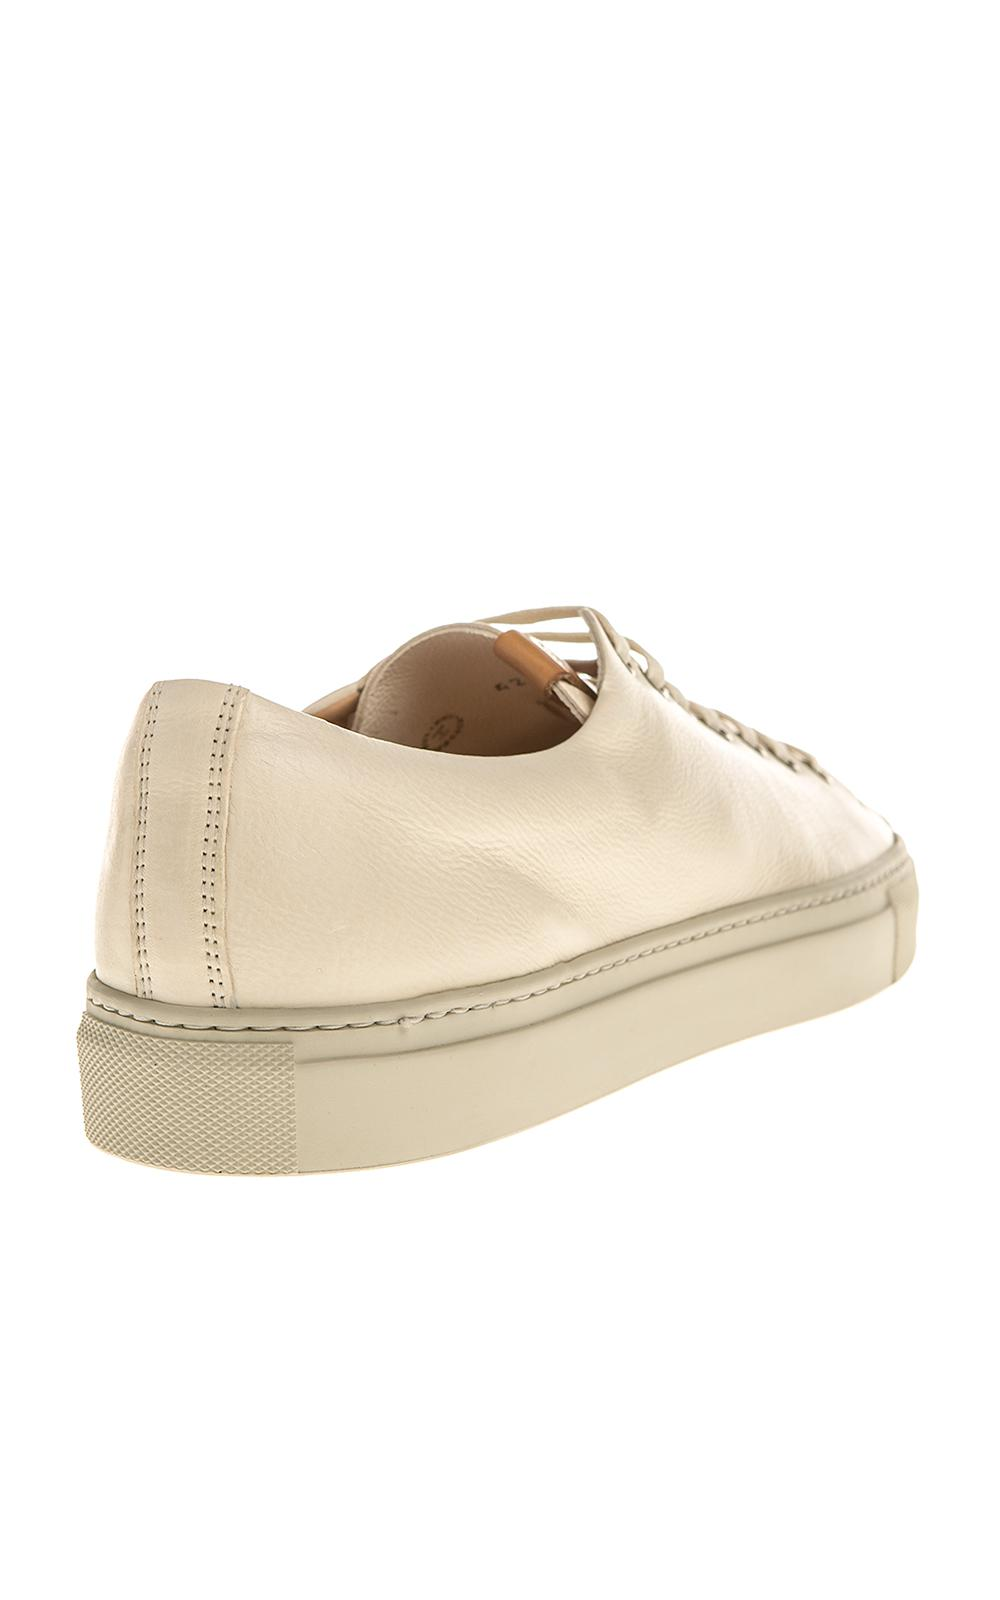 Buttero B6305 Tanino Low Sneaker Leather Bianco in Natural